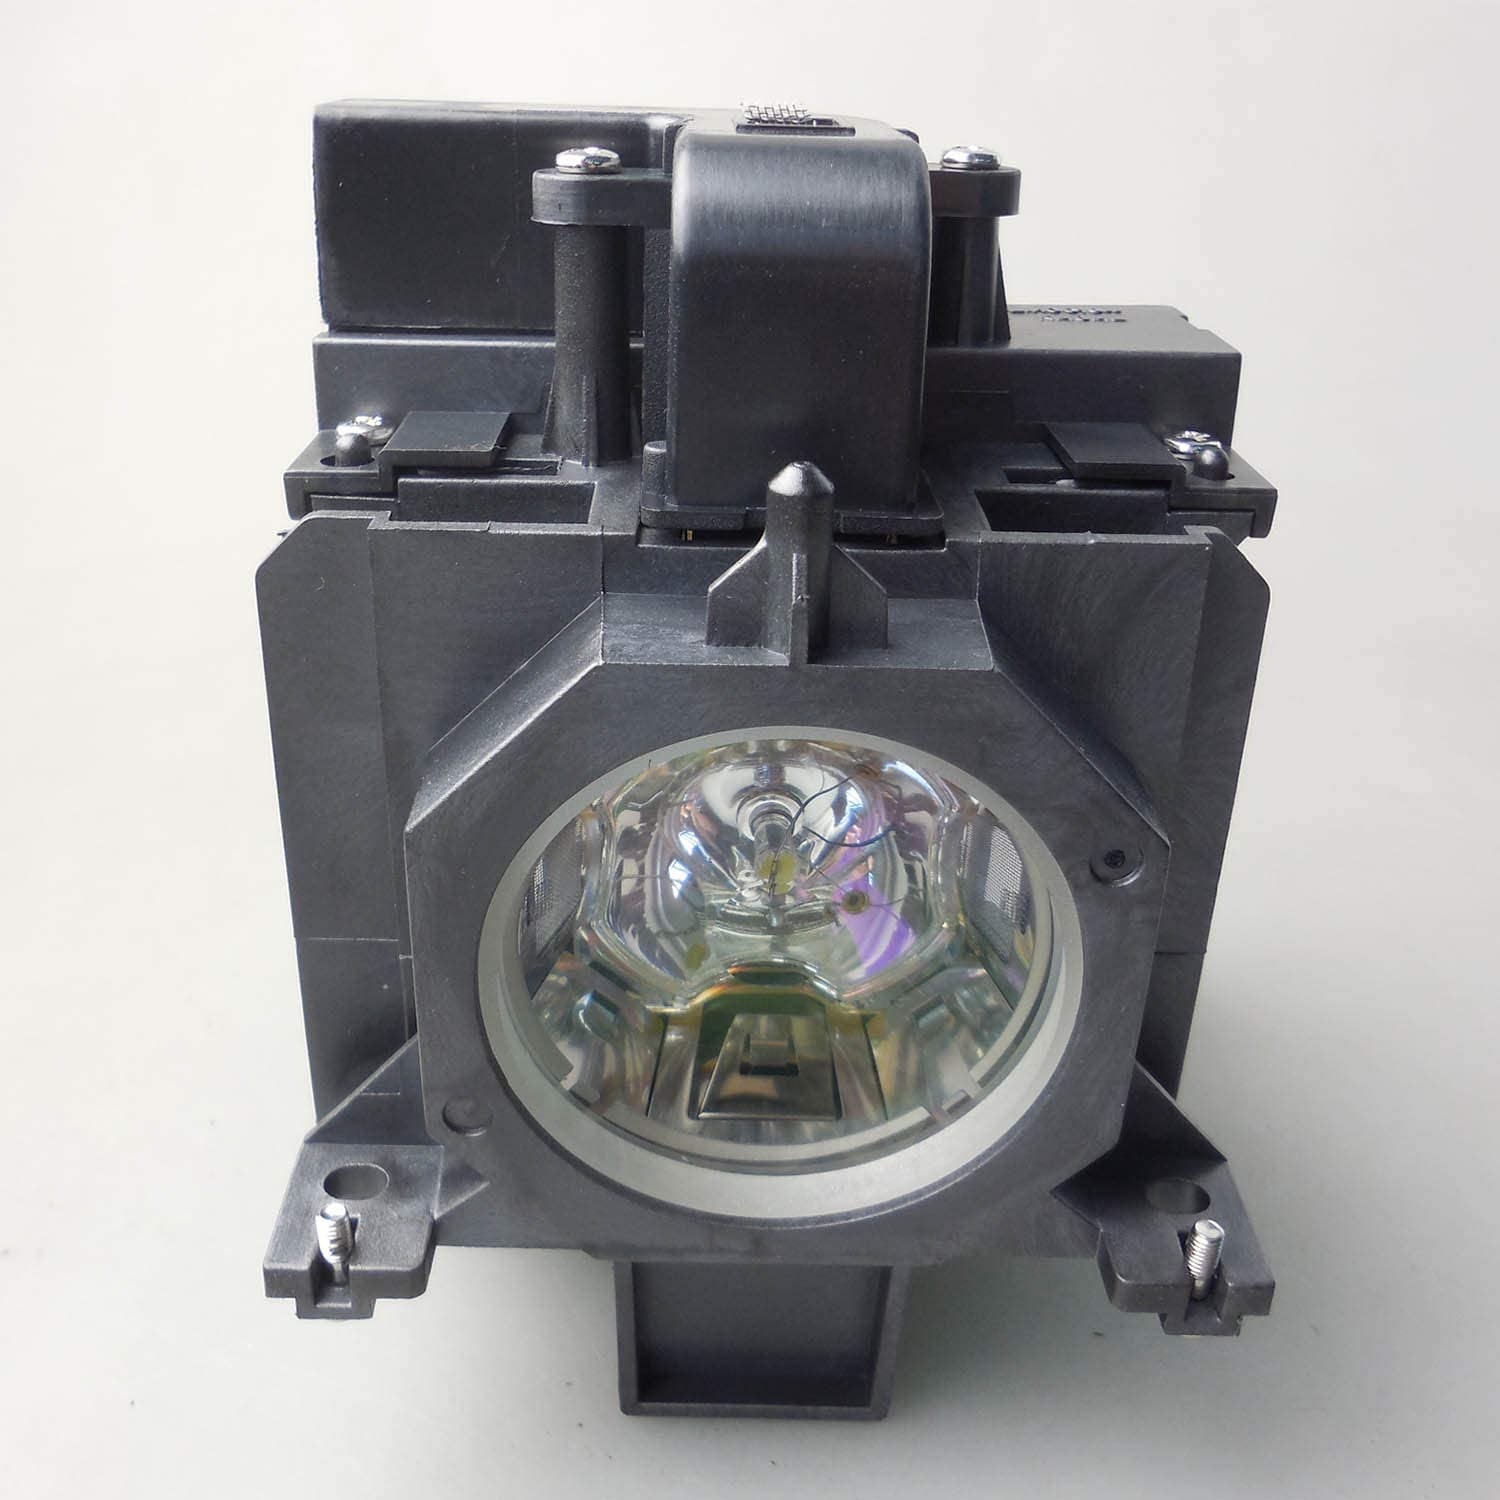 CTLAMP POA-LMP136 Assembly with Genuine OEM Bulb Inside Projector Lamp Assembly with Original Bulb Inside Compatible with Sanyo PLC-WM5500 PLC-WM5500L PLC-XM150 PLC-XM150L PLC-ZM5000 PLC-ZM5000L